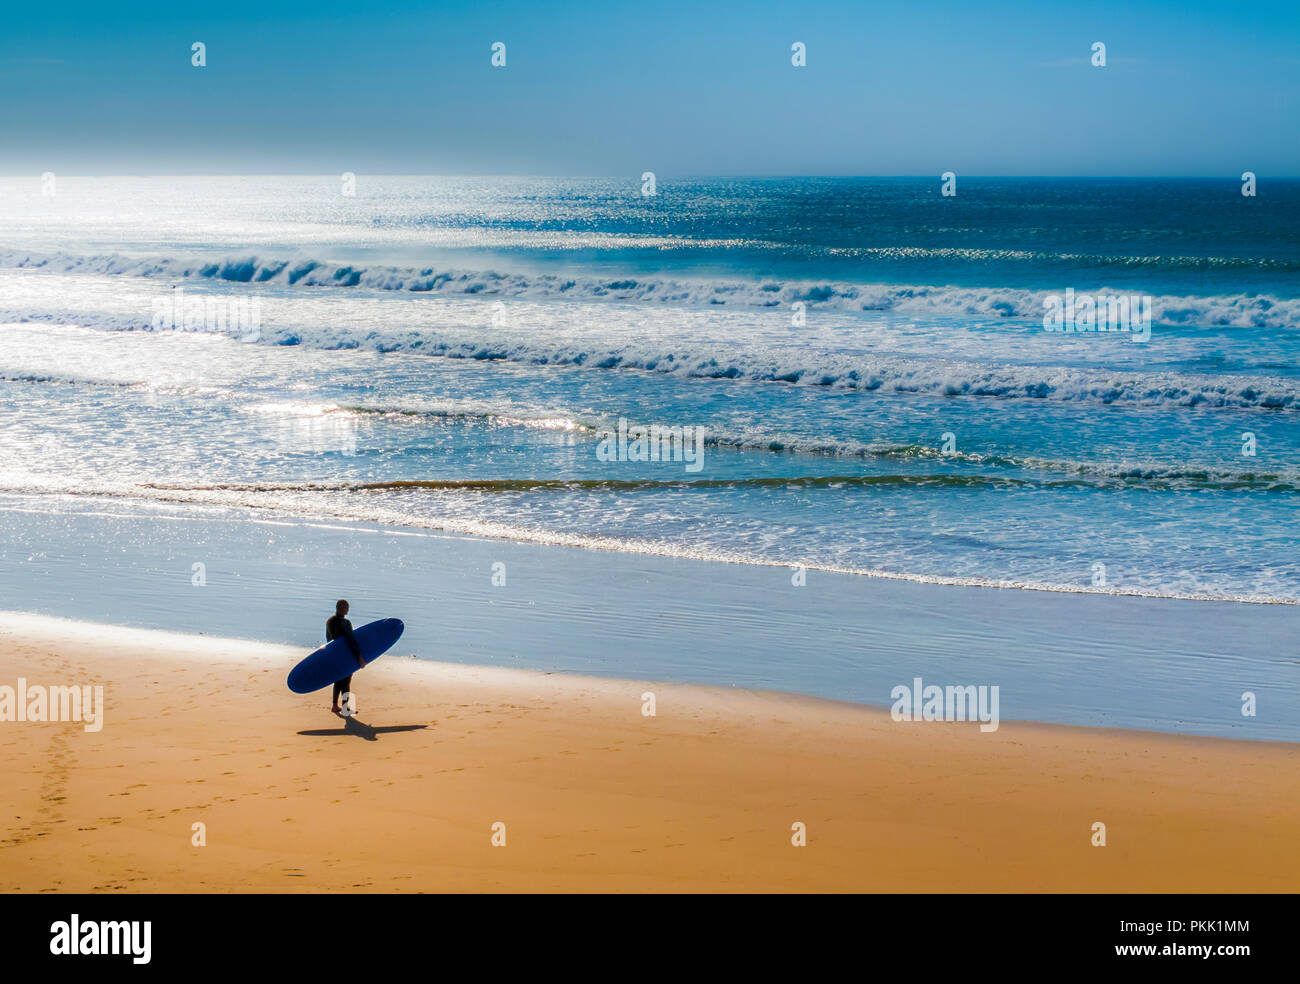 Silhouette of surfer standing on beach checking the surf conditions. Stock Photo